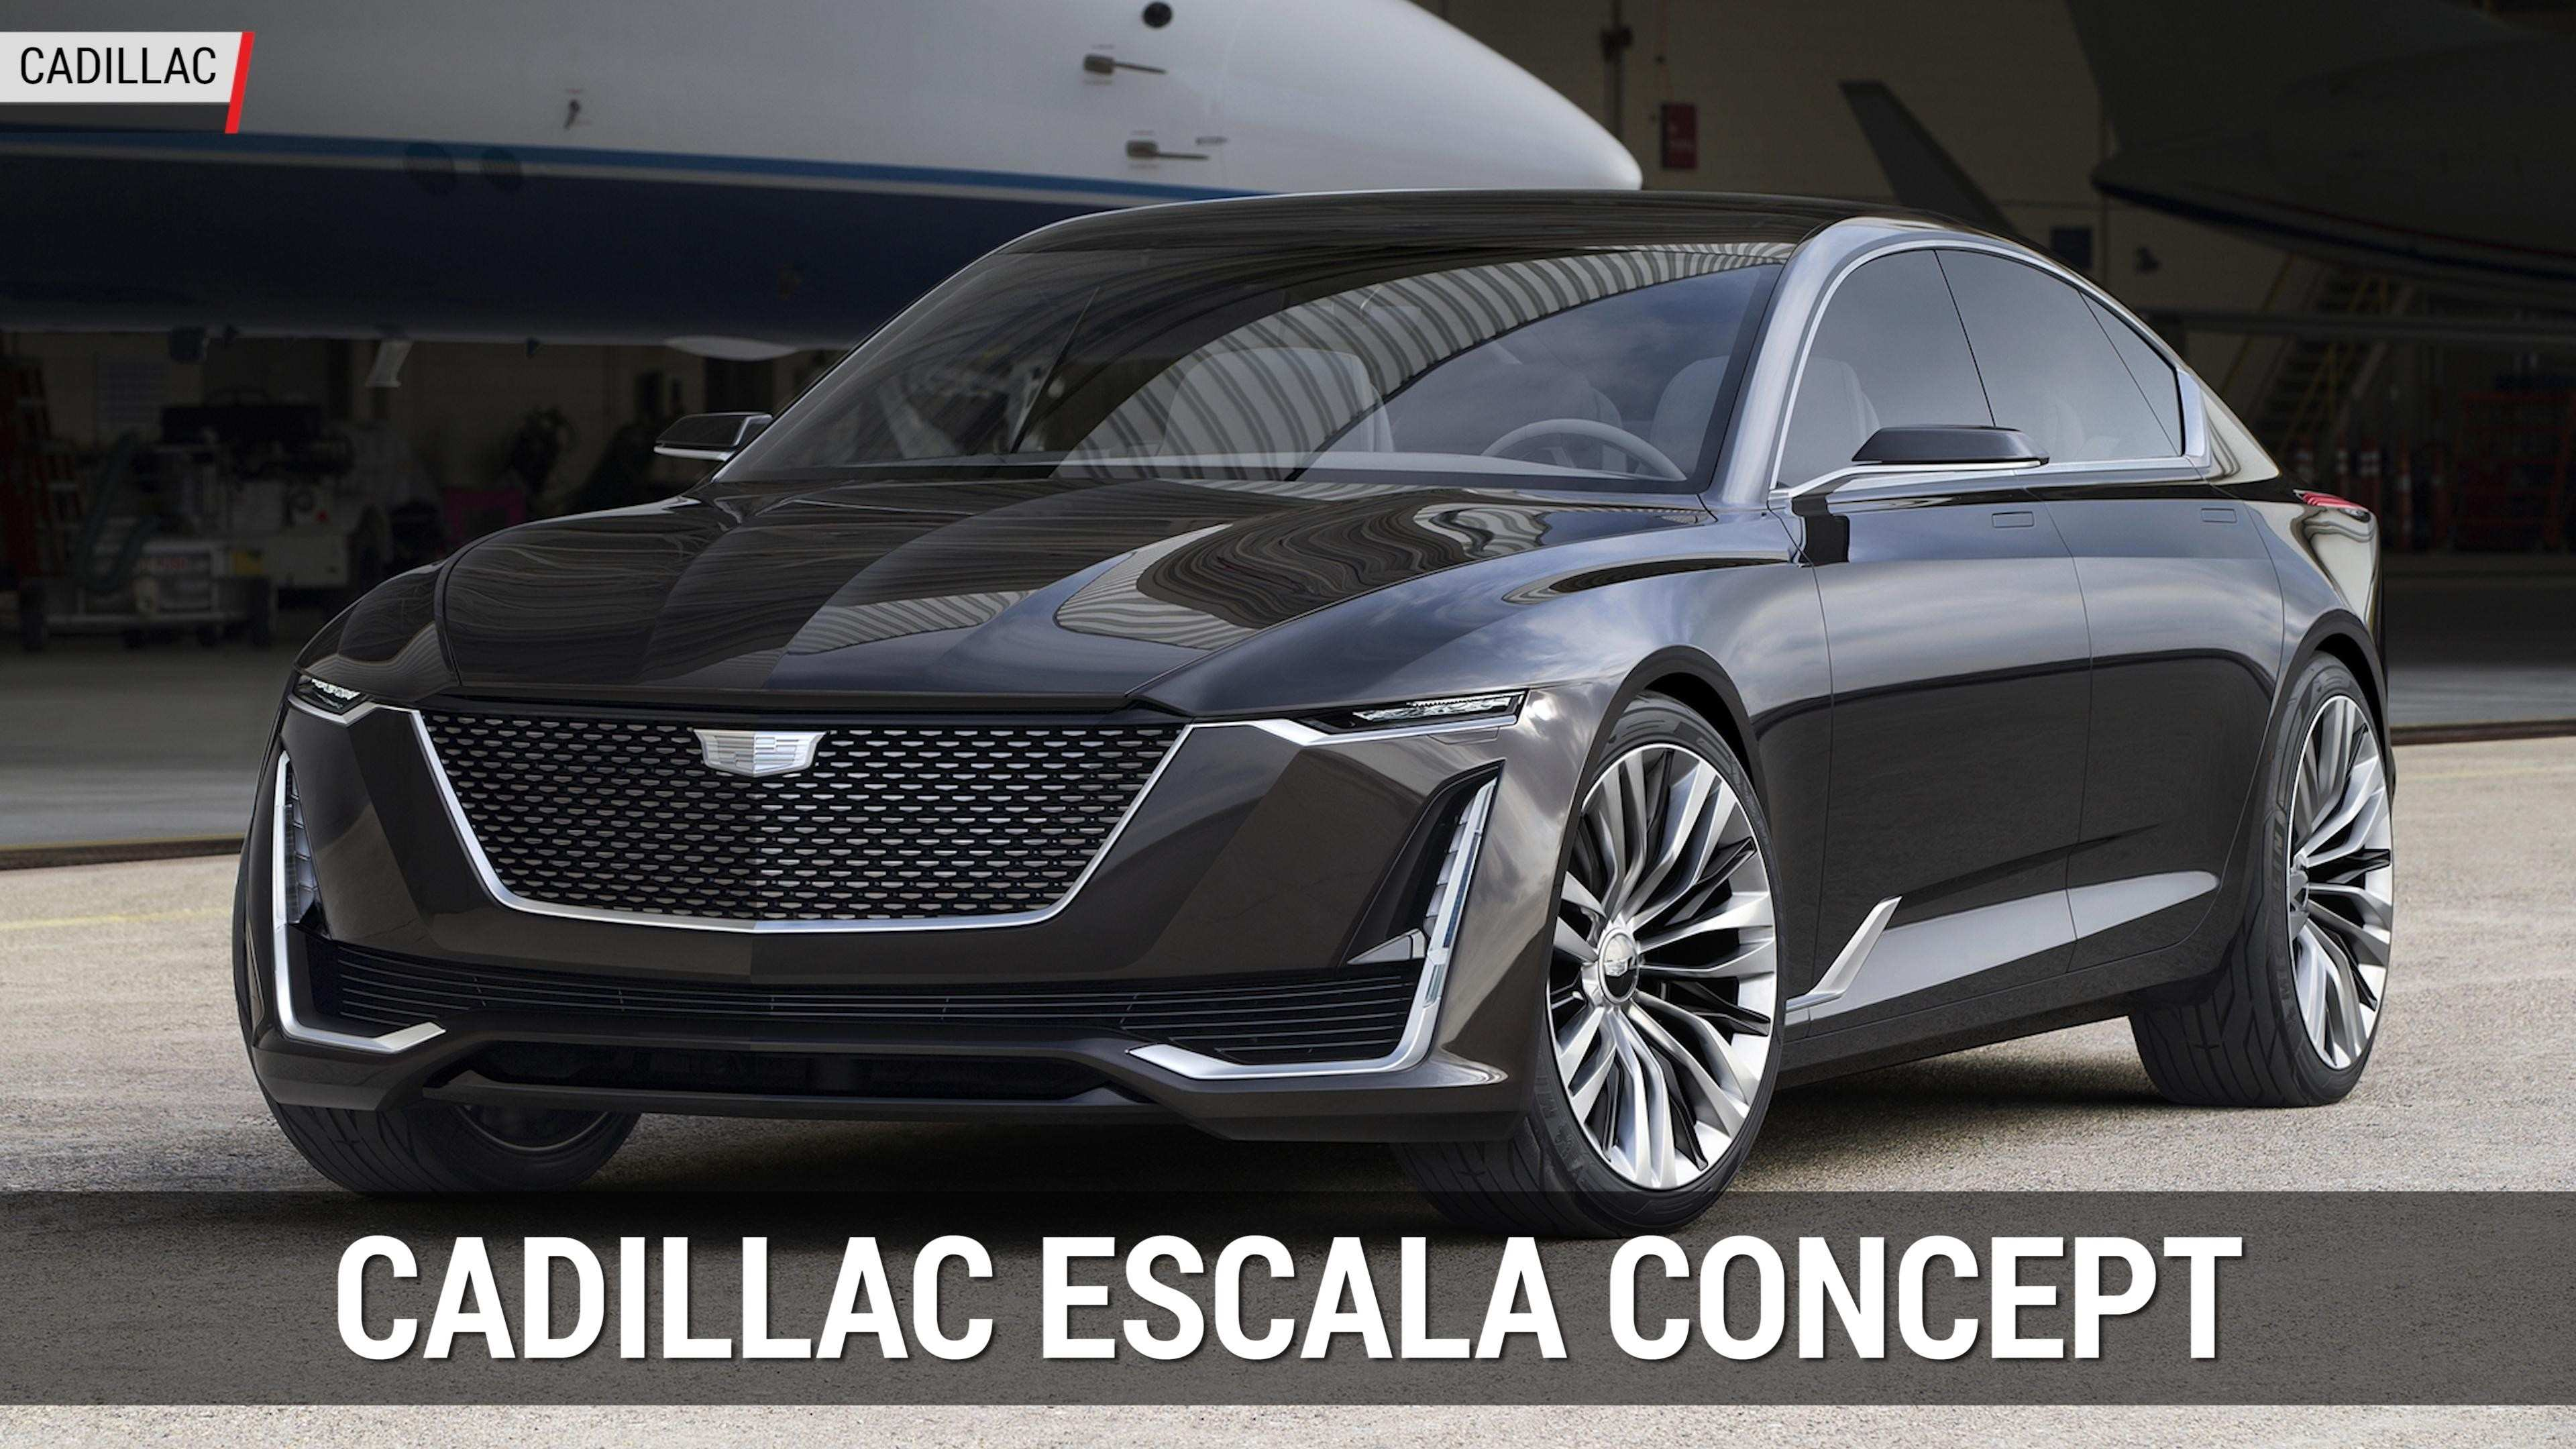 14 New Cadillac 2019 Ct5 Overview And Price Redesign for Cadillac 2019 Ct5 Overview And Price